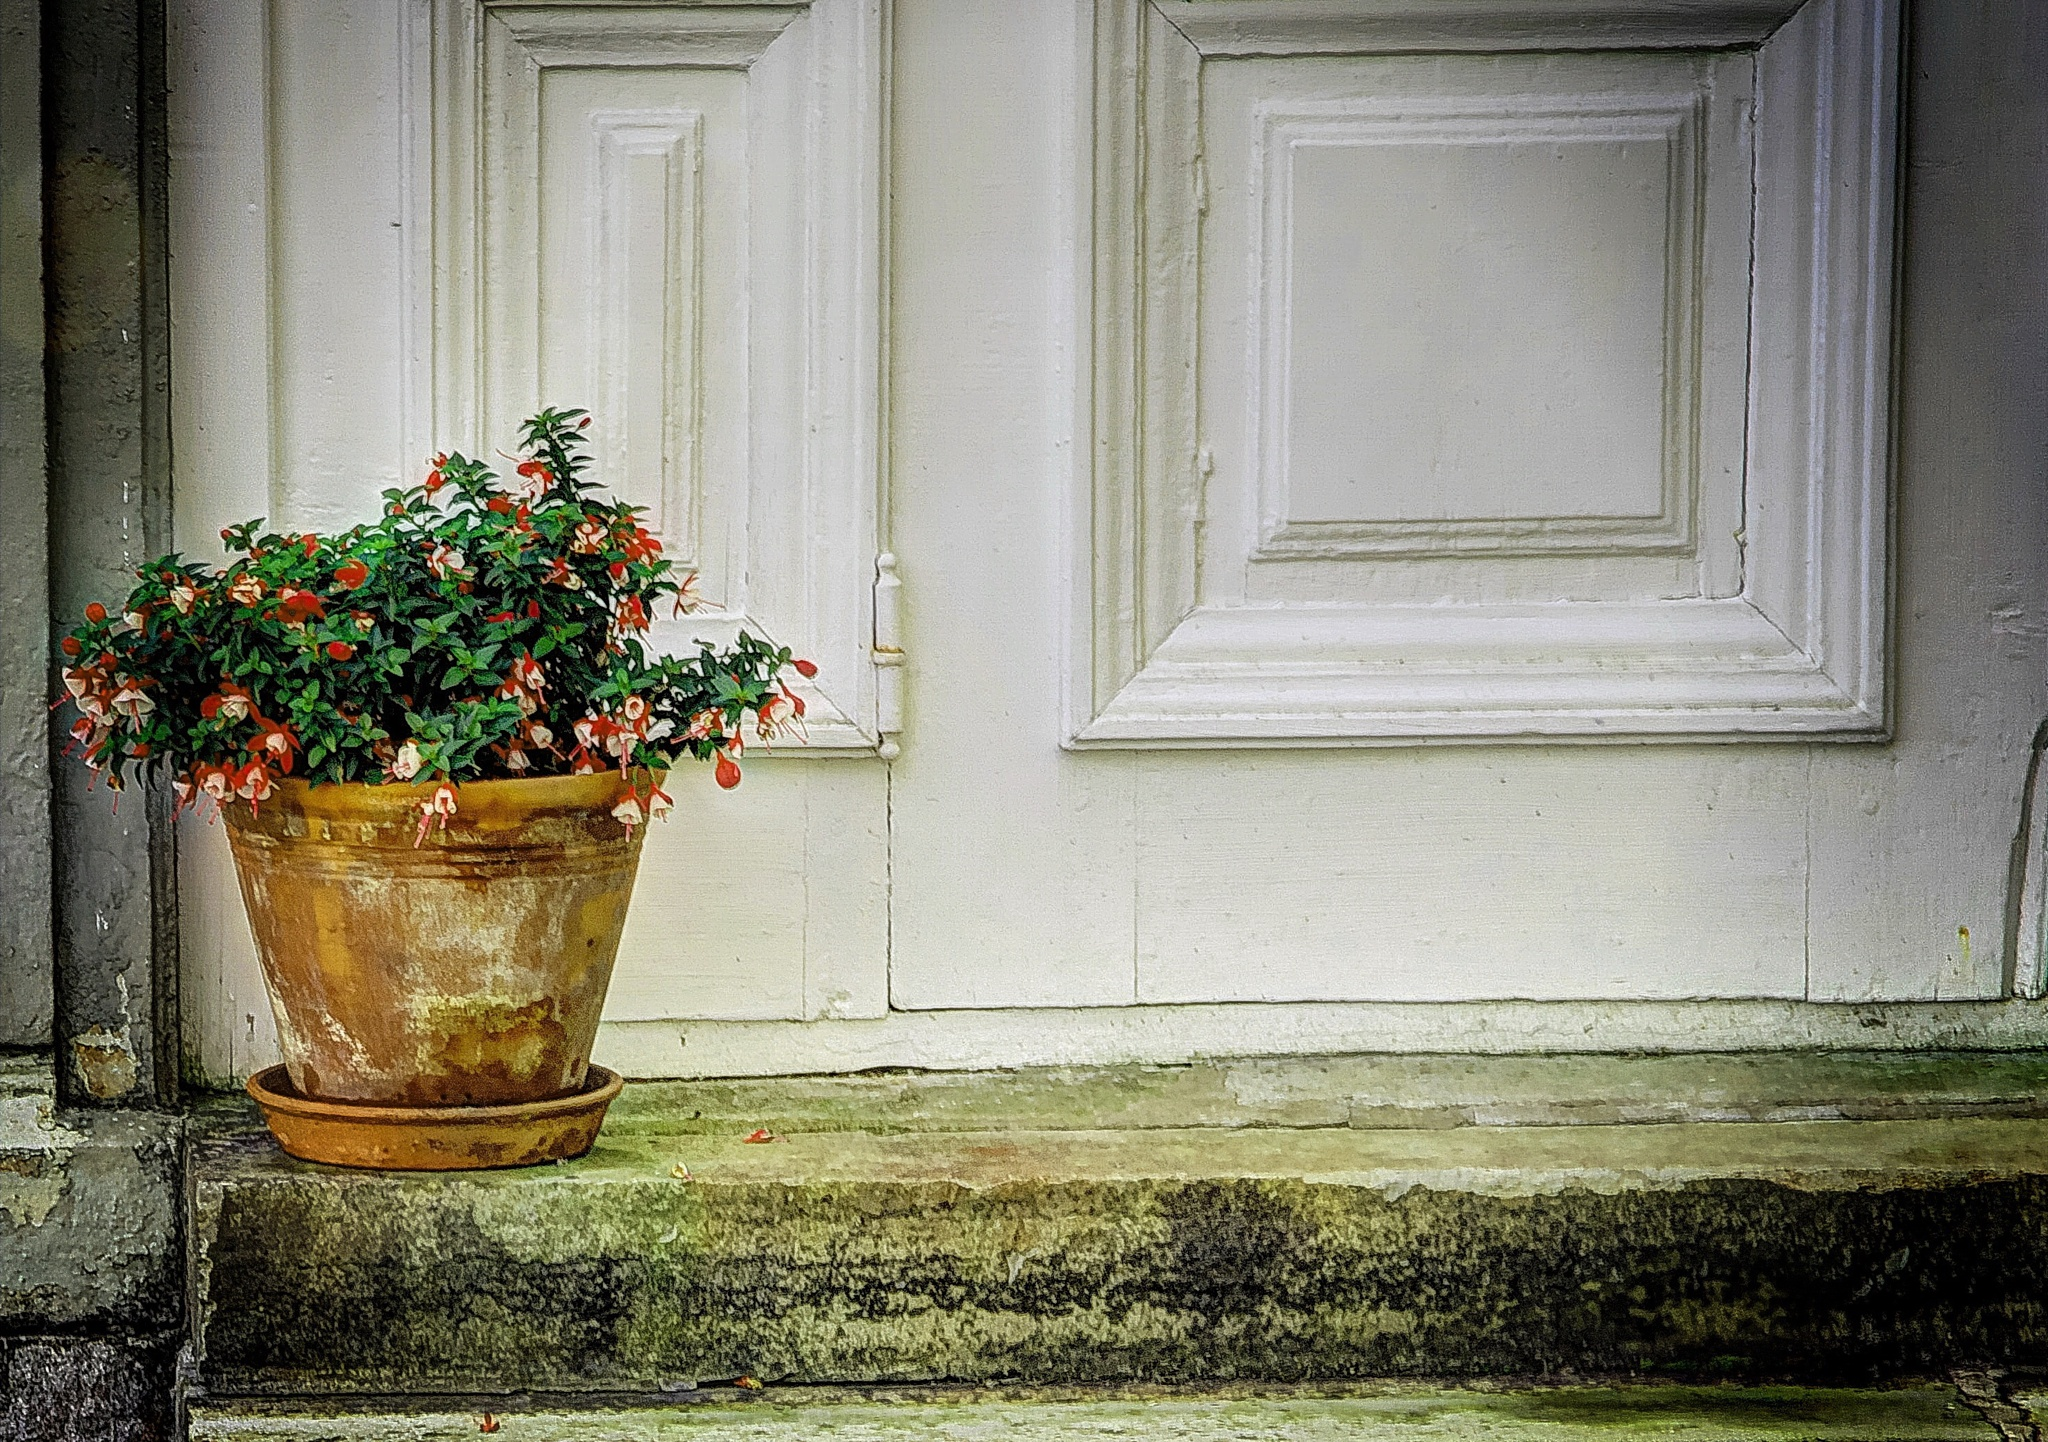 The lonely flowerpot by rockorbach